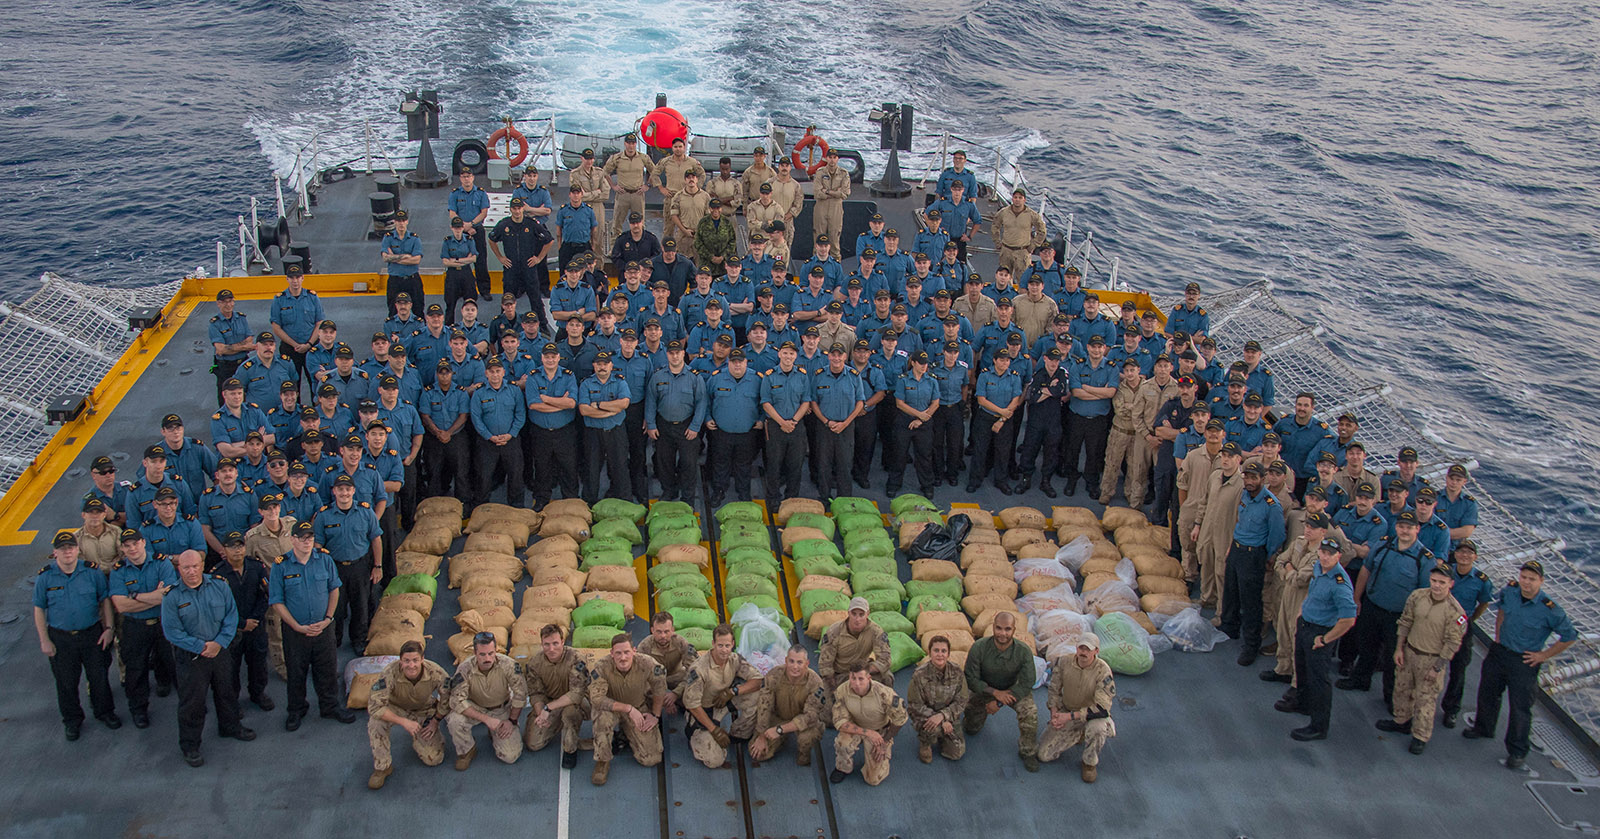 HMCS REGINA's crew poses with over 2000 kilograms of narcotics seized from a dhow during Operation ARTEMIS in the Pacific Ocean on April 7 2019.